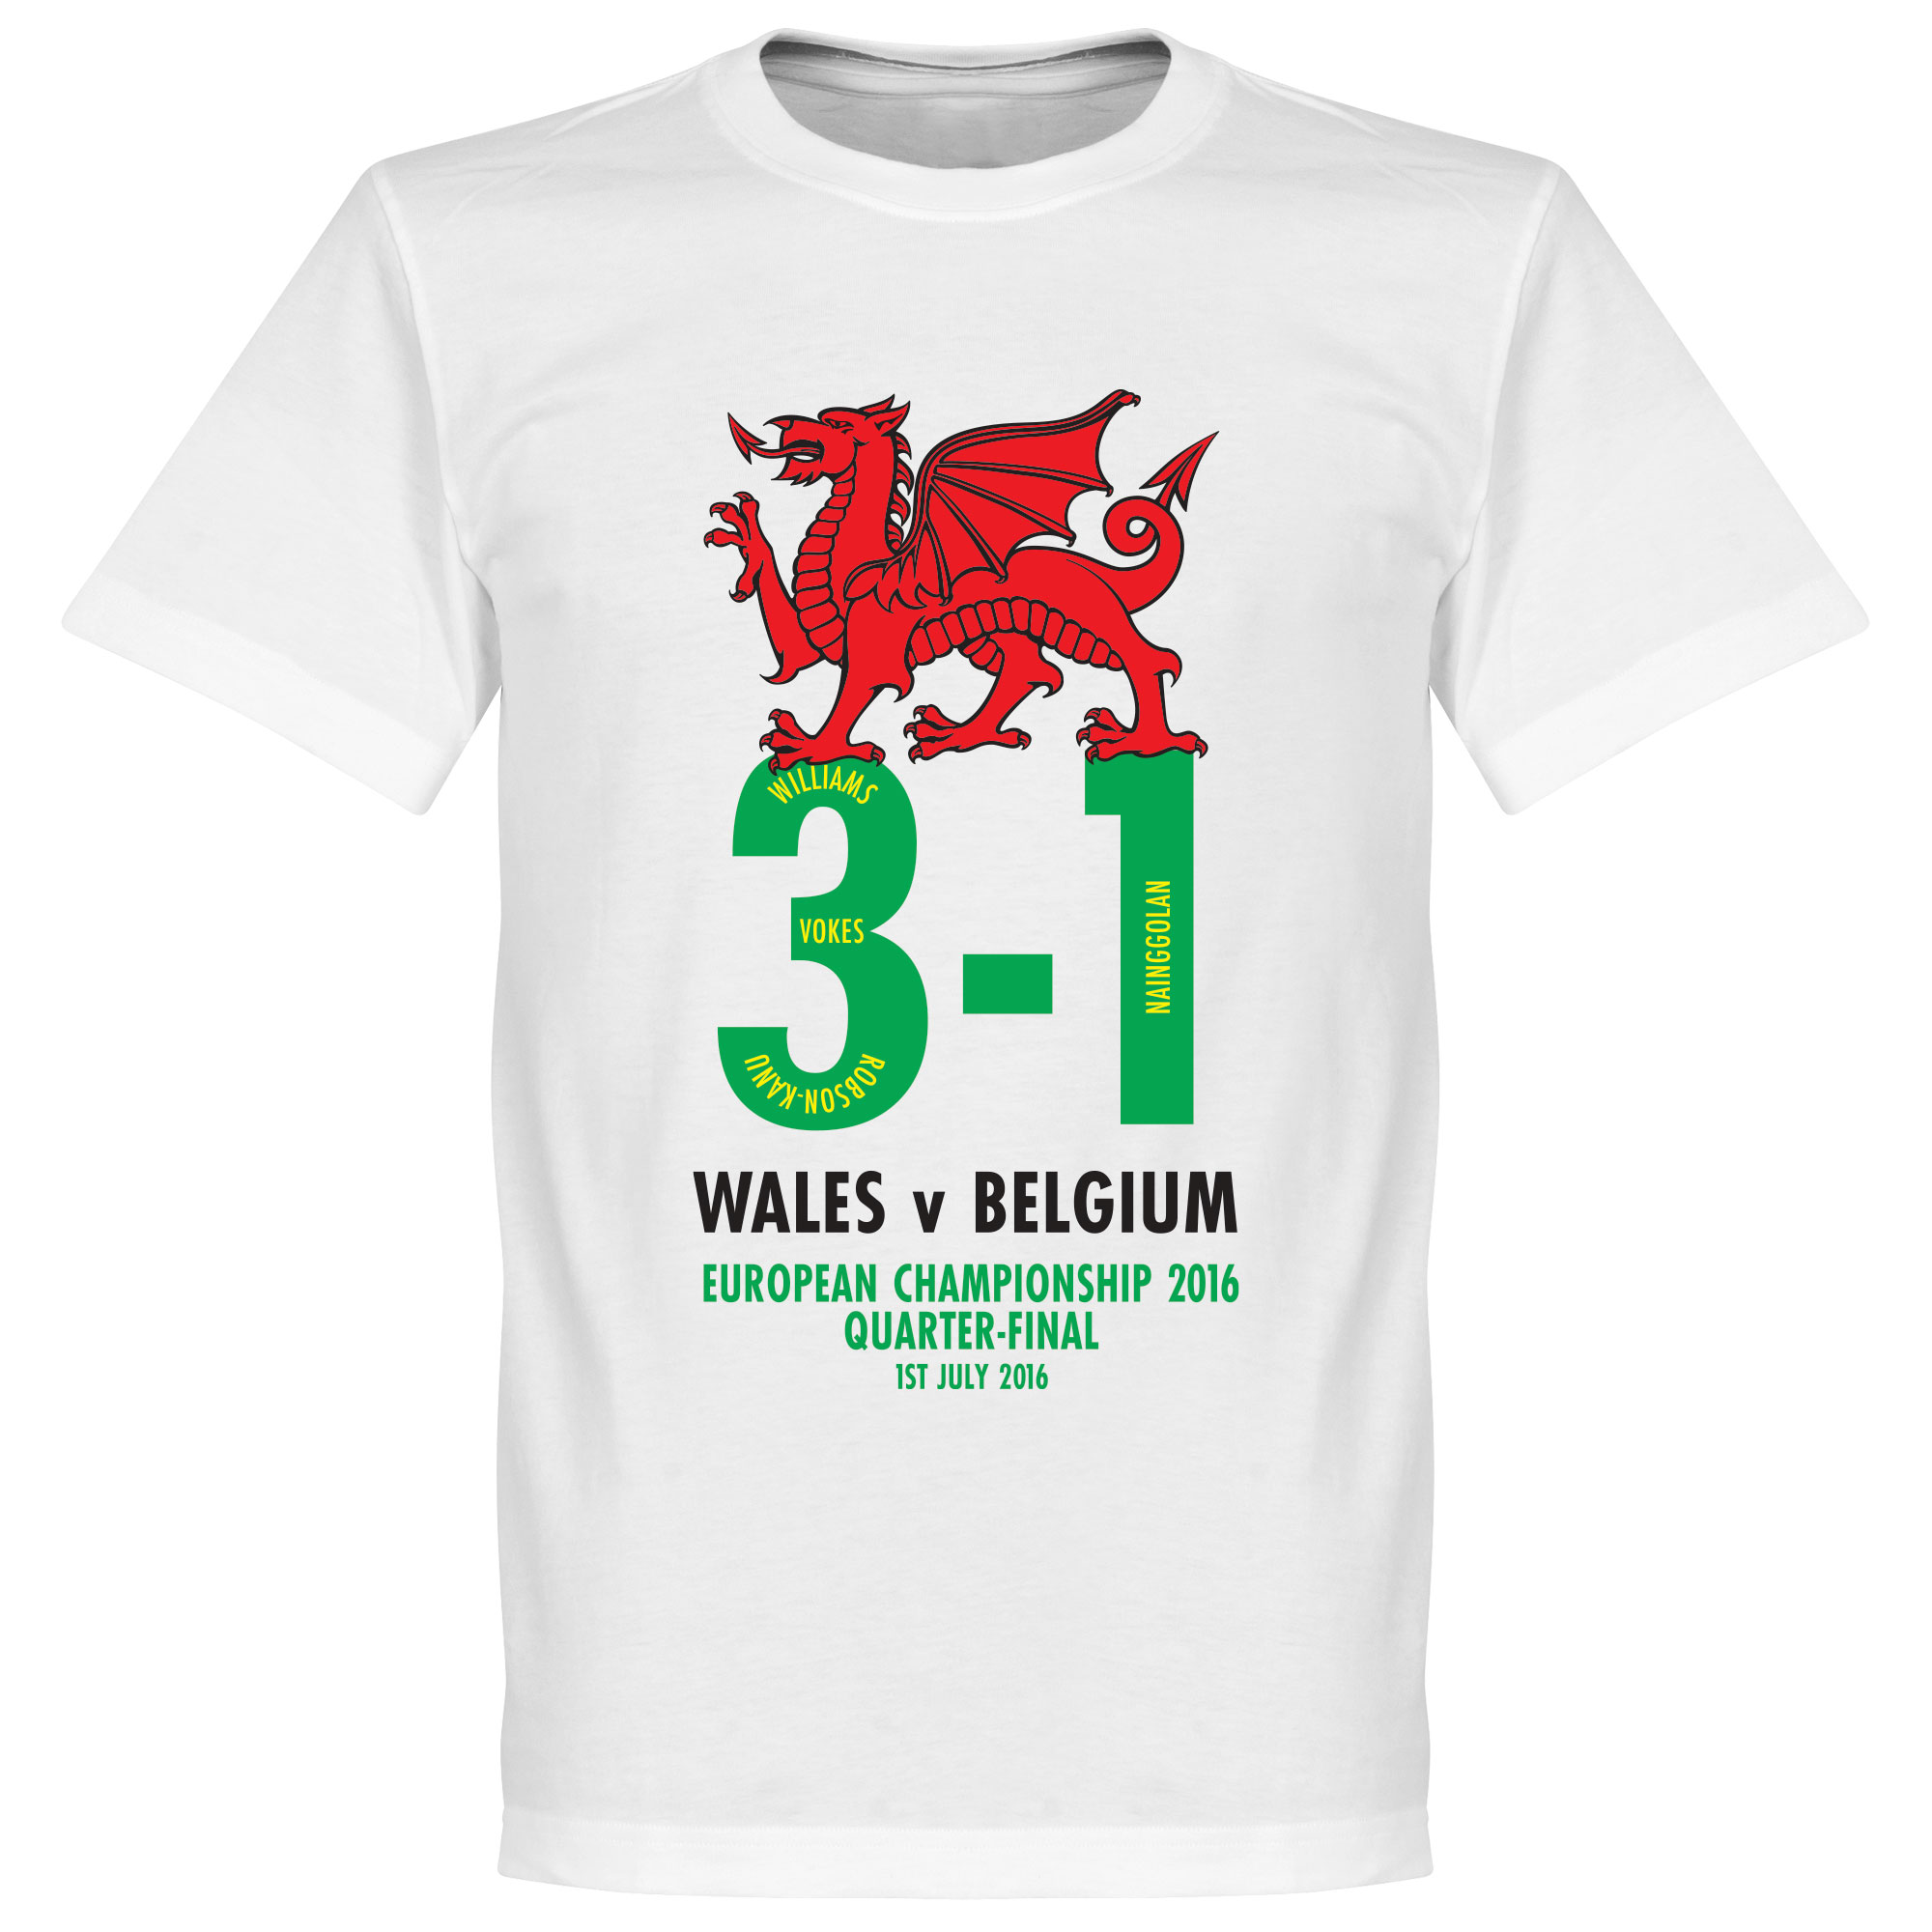 Wales v Belgium 3-1 Victory Commemorative Tee - White - L